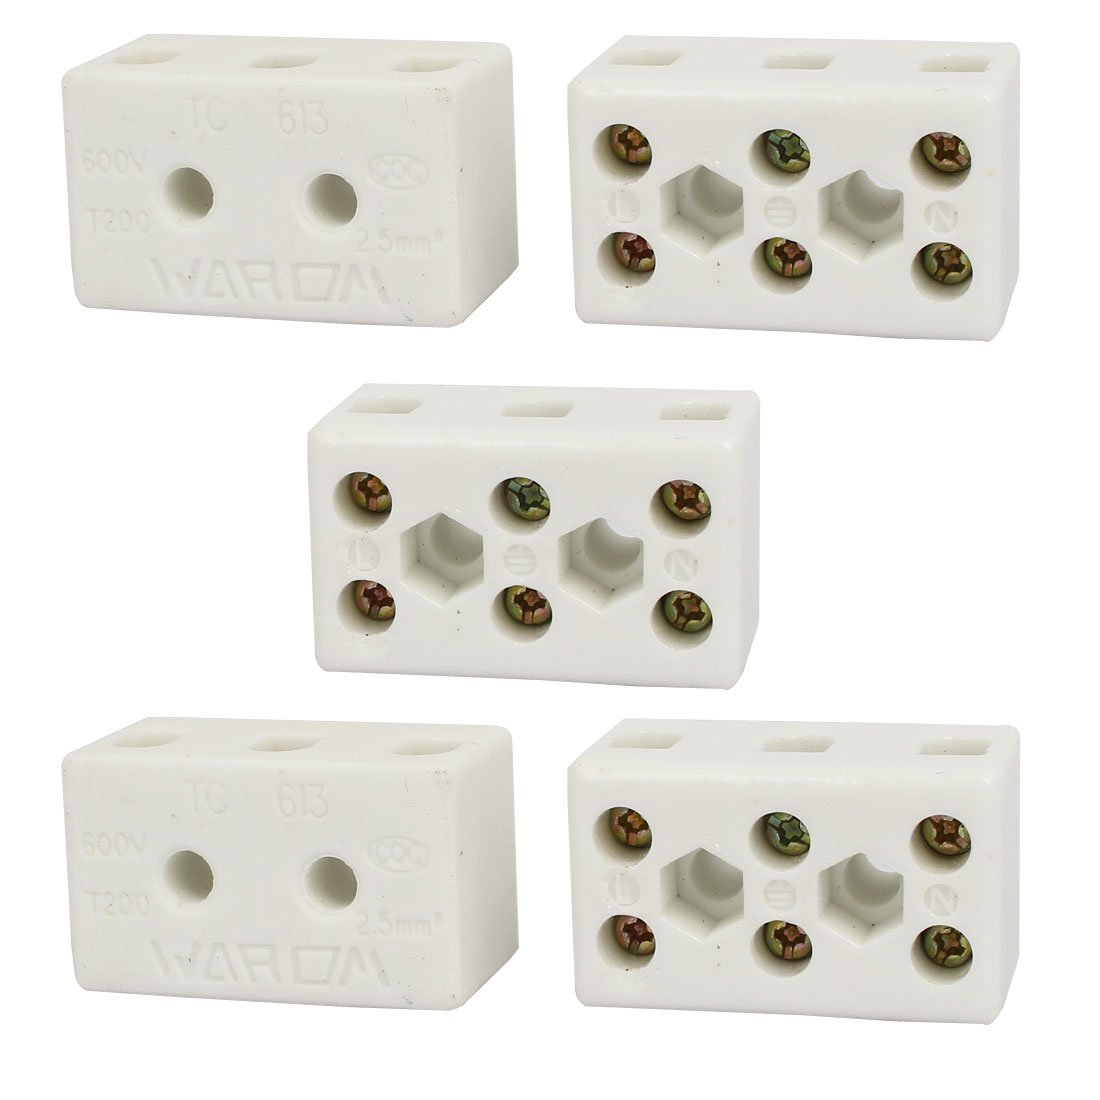 uxcell 600V 15A 3 Position 8 Hole Ceramic Terminal Blocks Wire Cable Connectors 5pcs